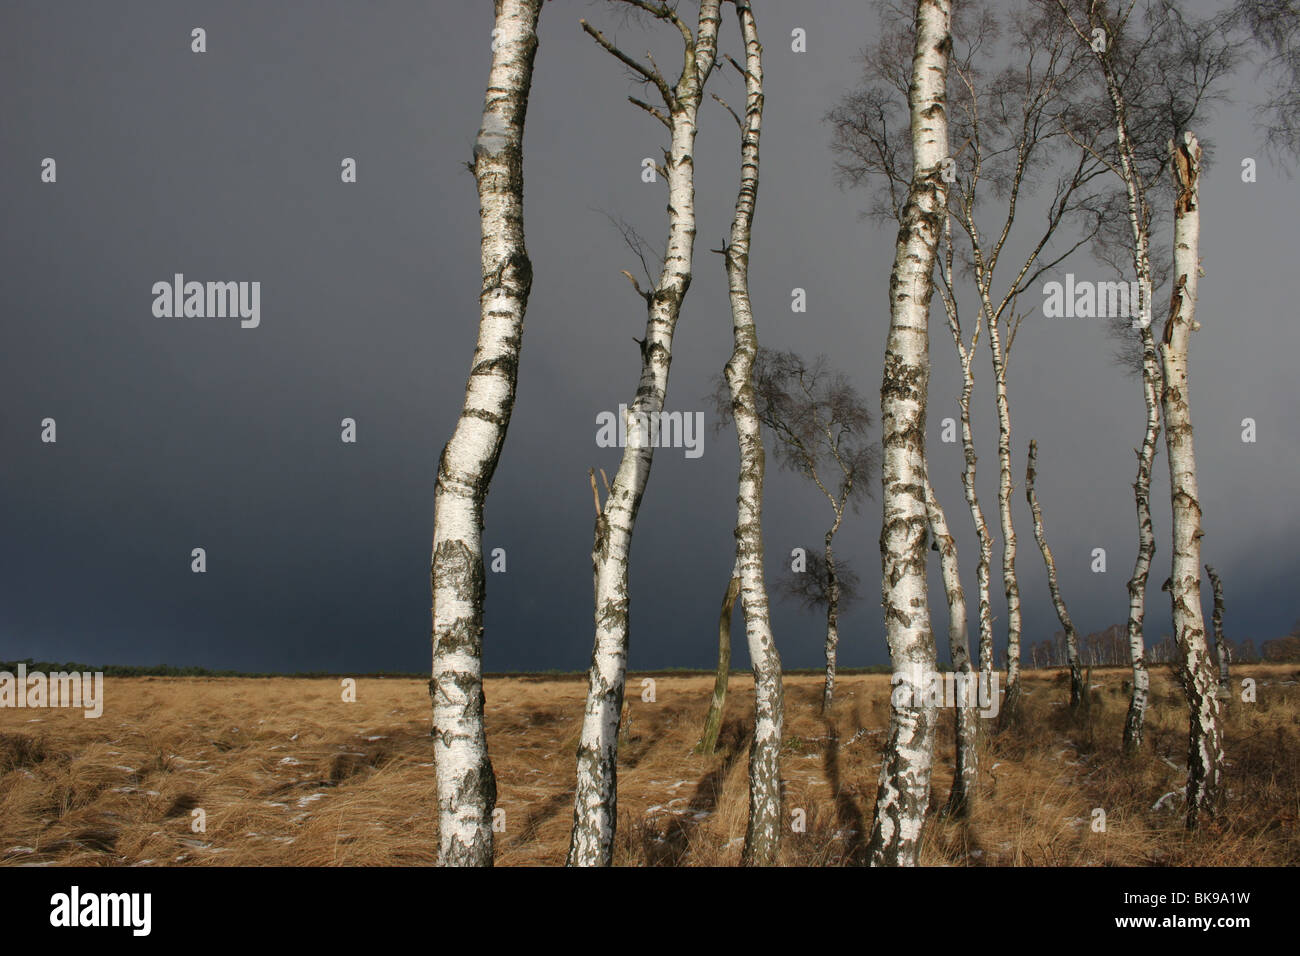 Birch trees with a black sky in the background - Stock Image